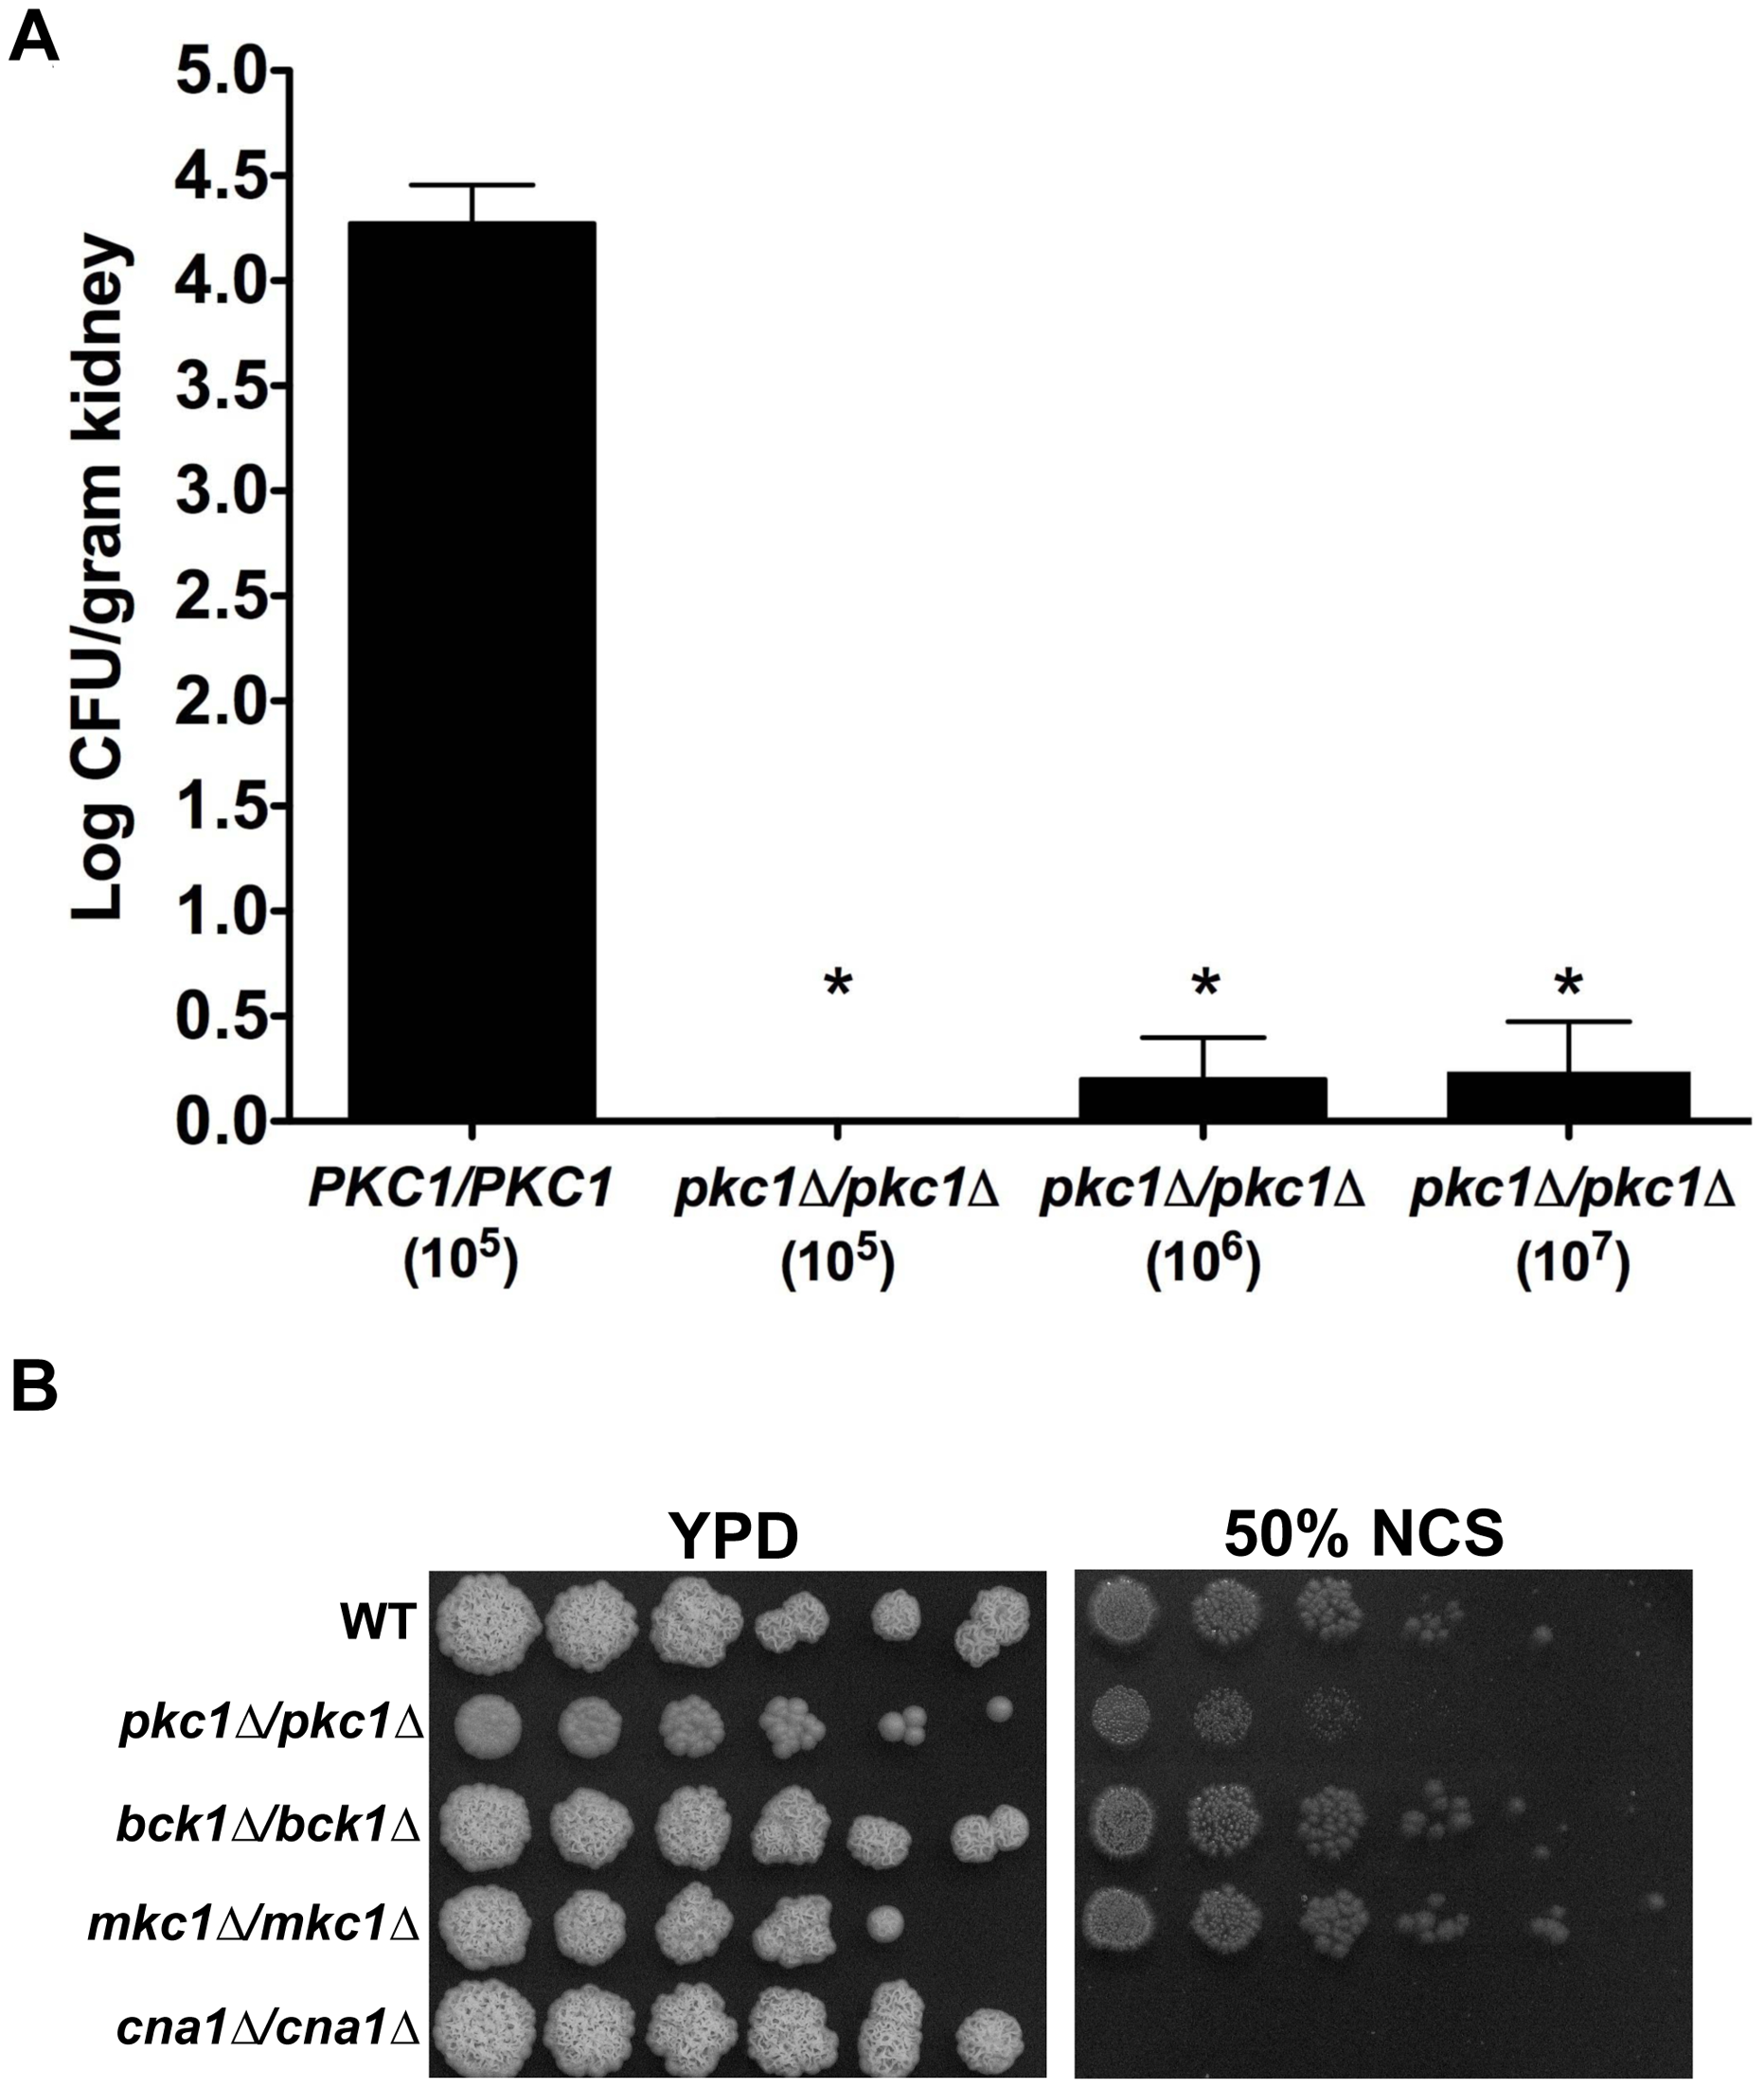 Deletion of <i>C. albicans PKC1</i> attenuates virulence in a murine model by targets distinct from calcineurin.